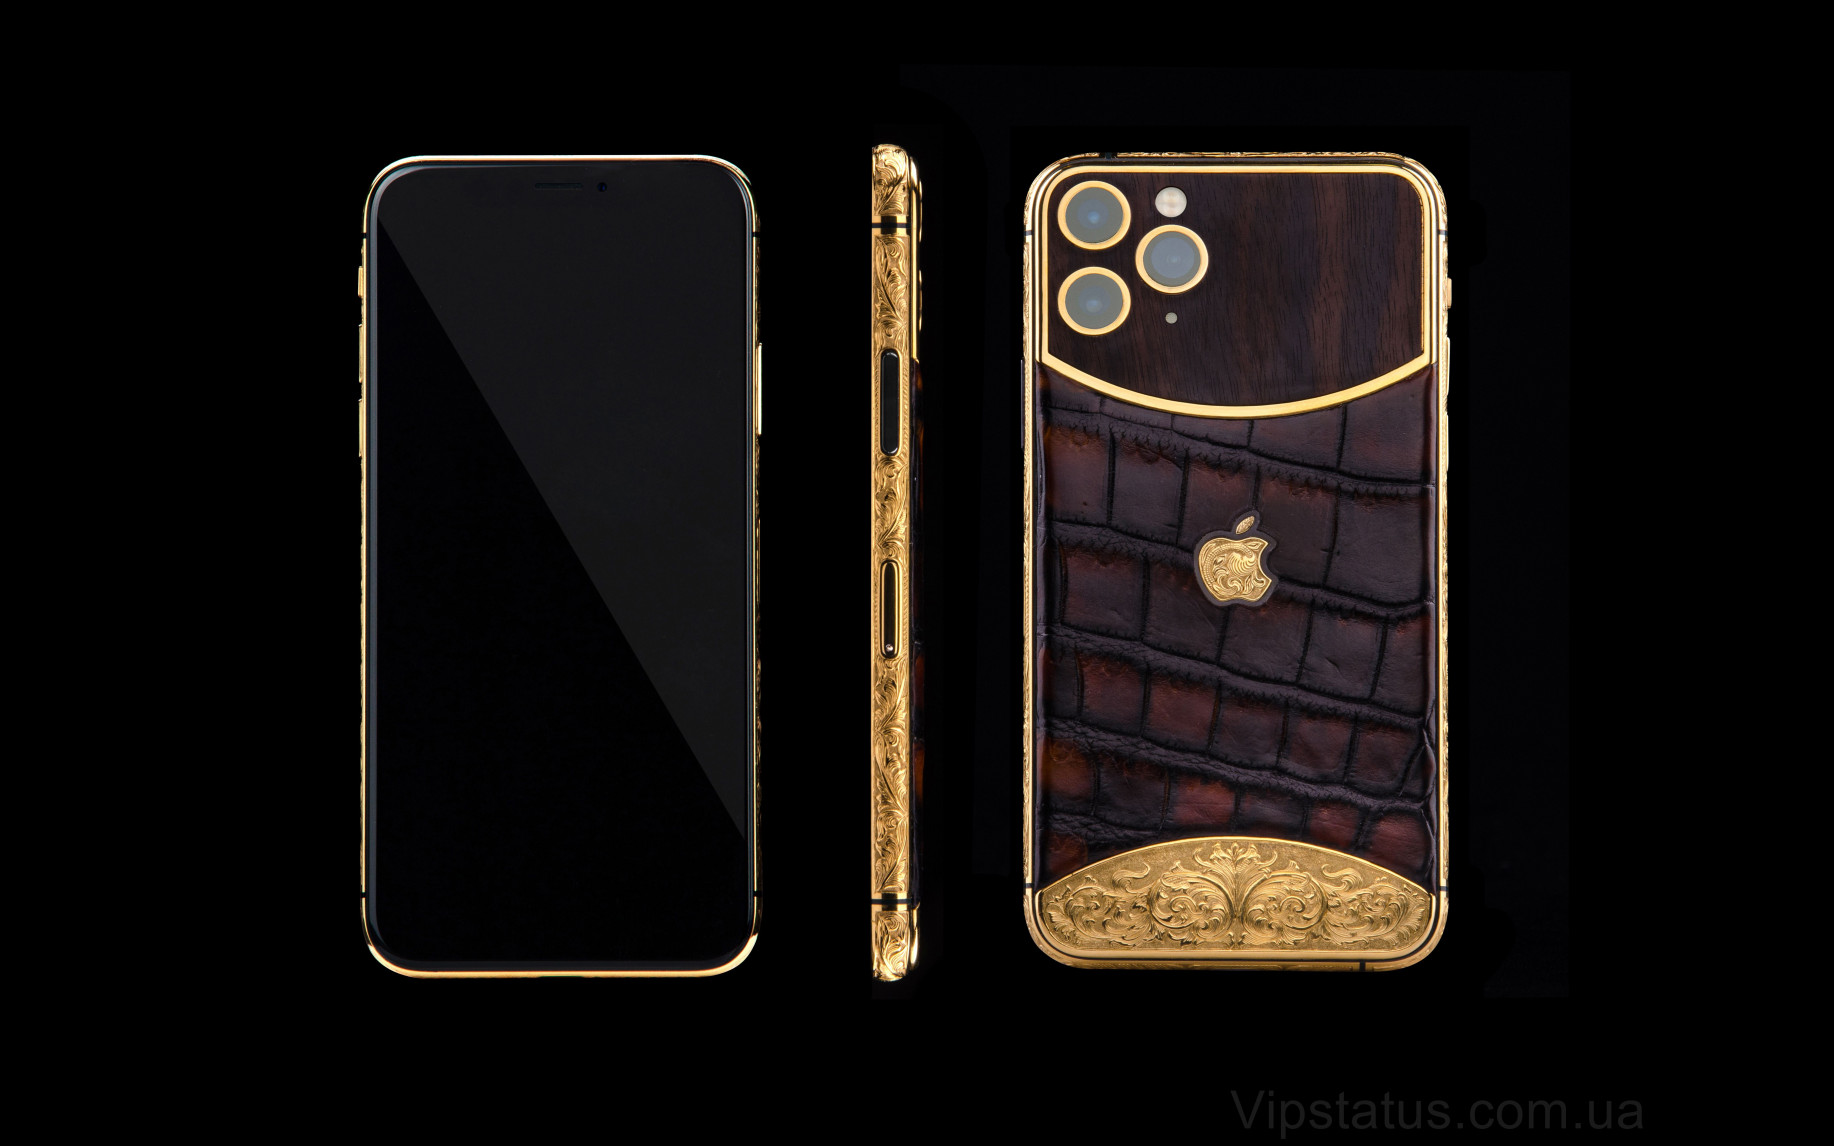 Elite Brown Edition IPHONE XS 512 GB Brown Edition IPHONE XS 512 GB image 5